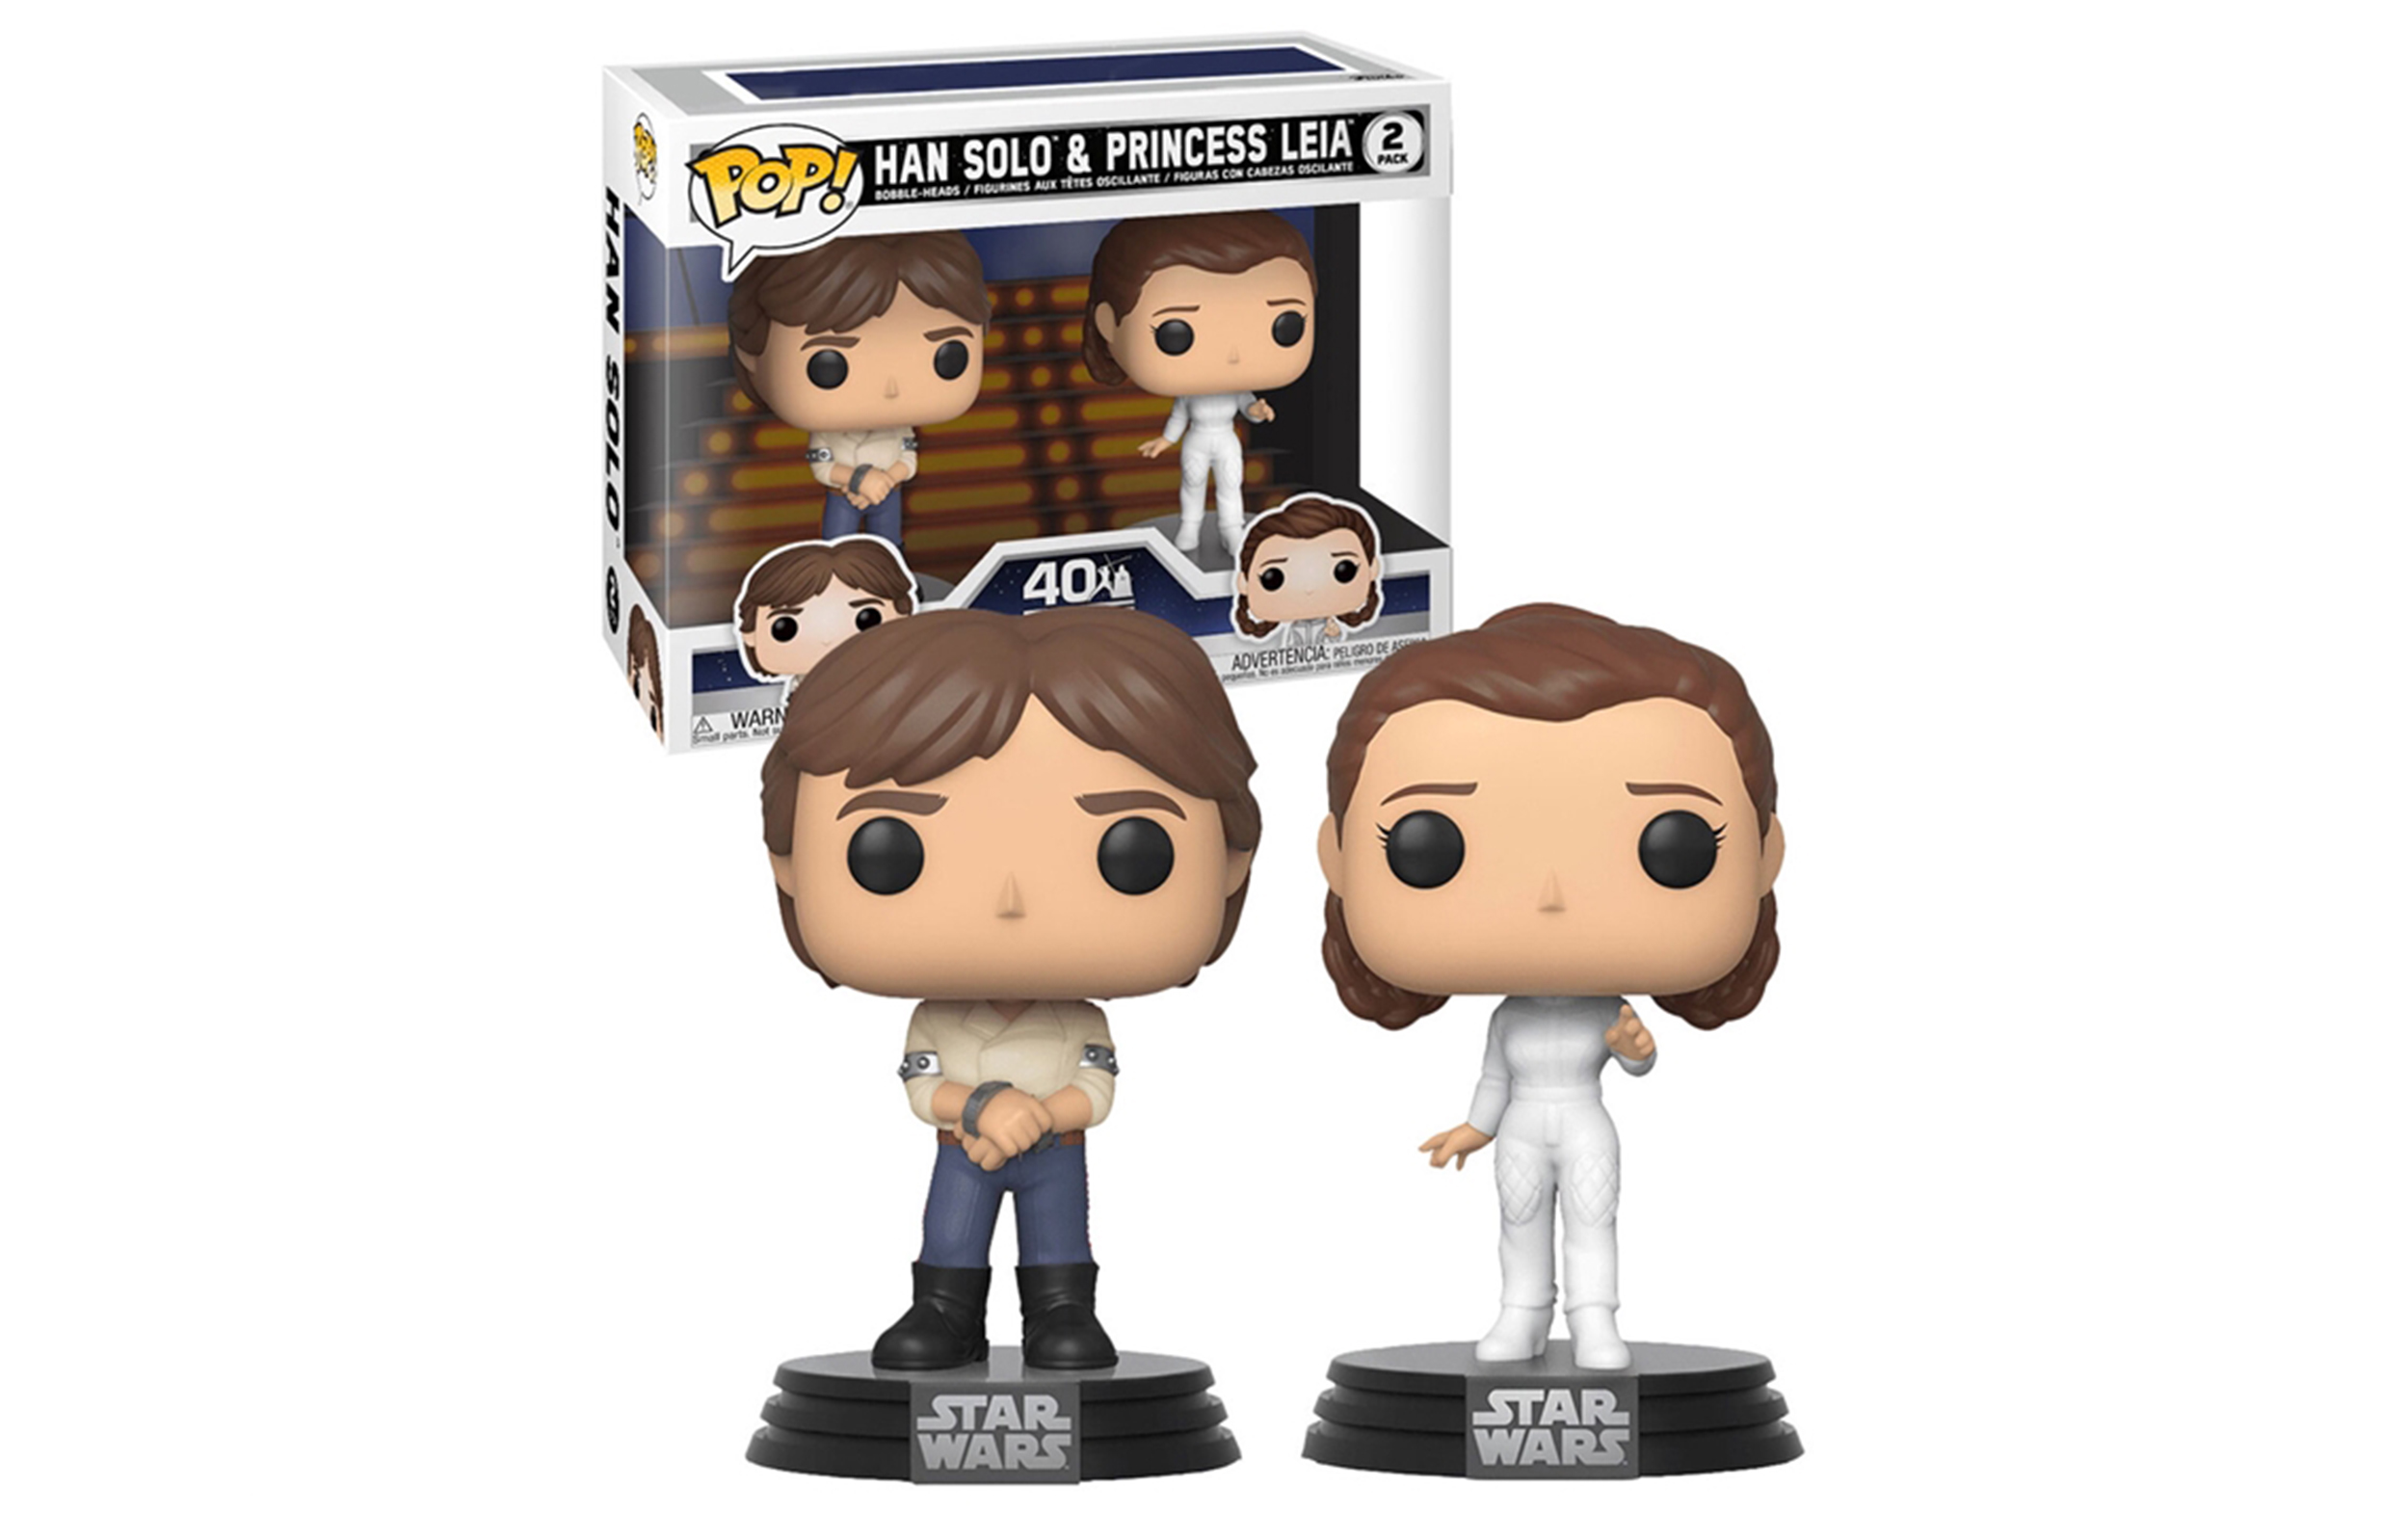 Star Wars Han Solo and Princess Leia 2 Pack Funko POP Vinyl Figure